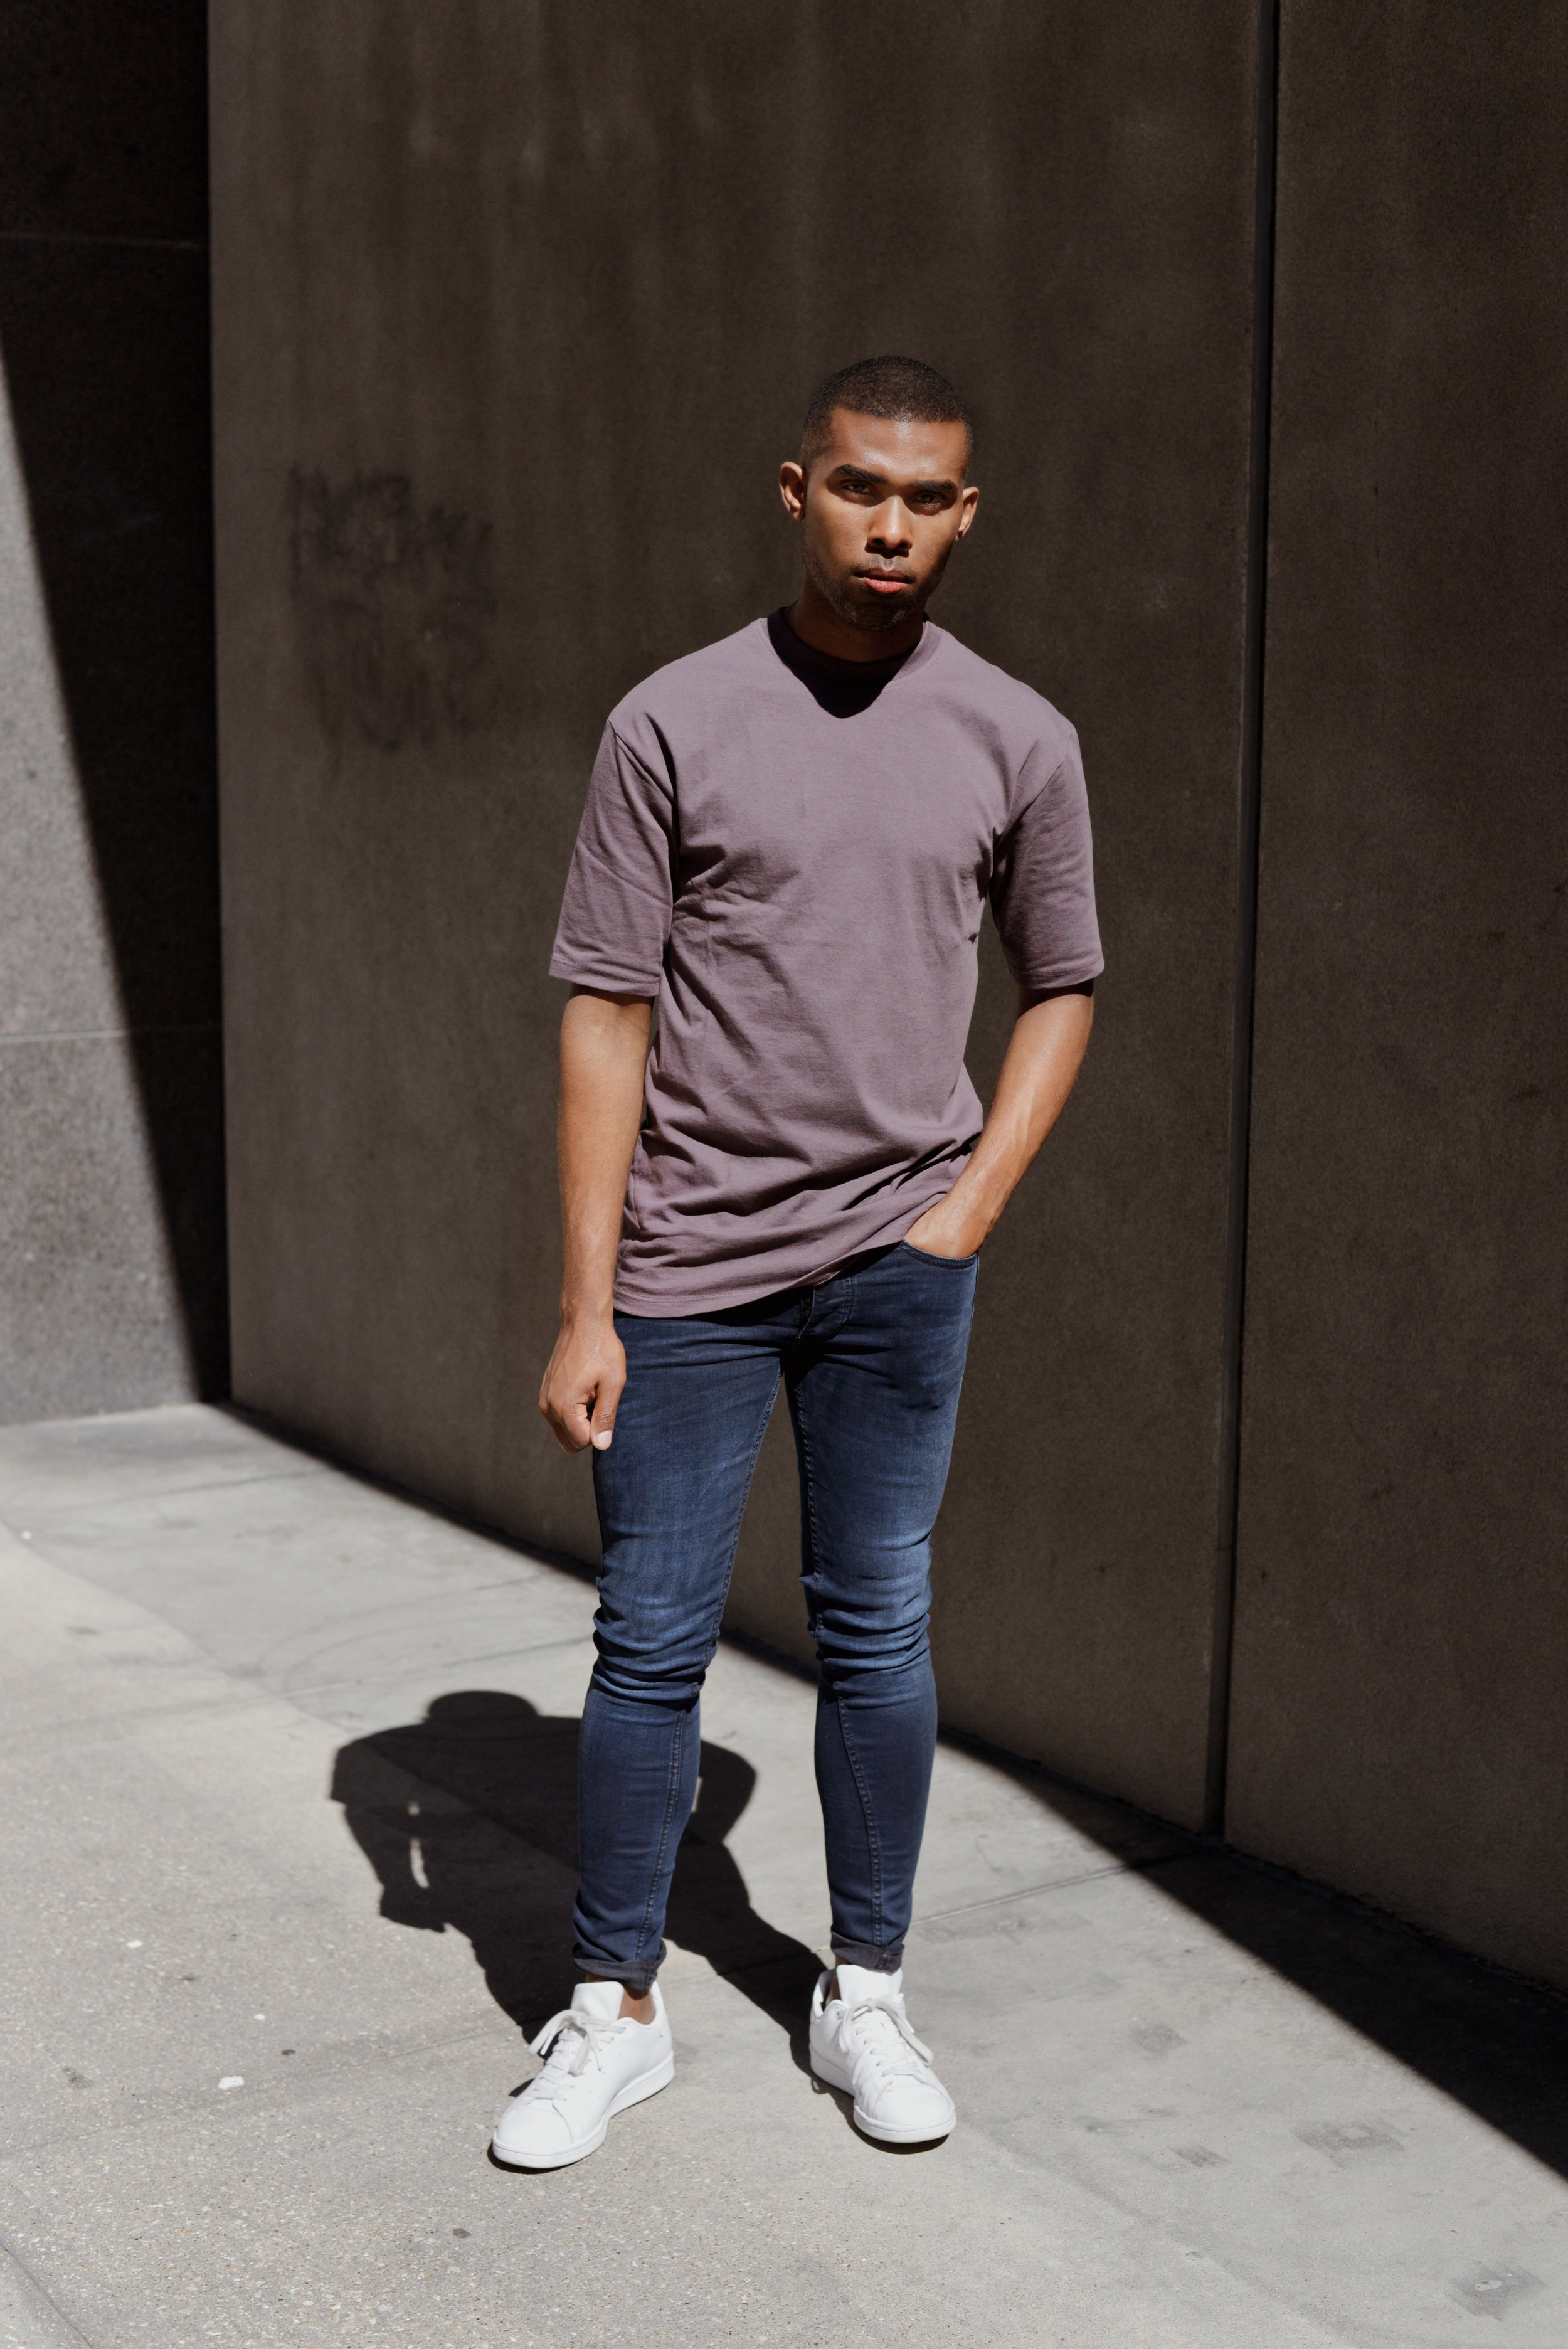 The-Look-Principle-Topman-Denim-A Celebration-Of-The-Fabric-We Live-In-10.jpg